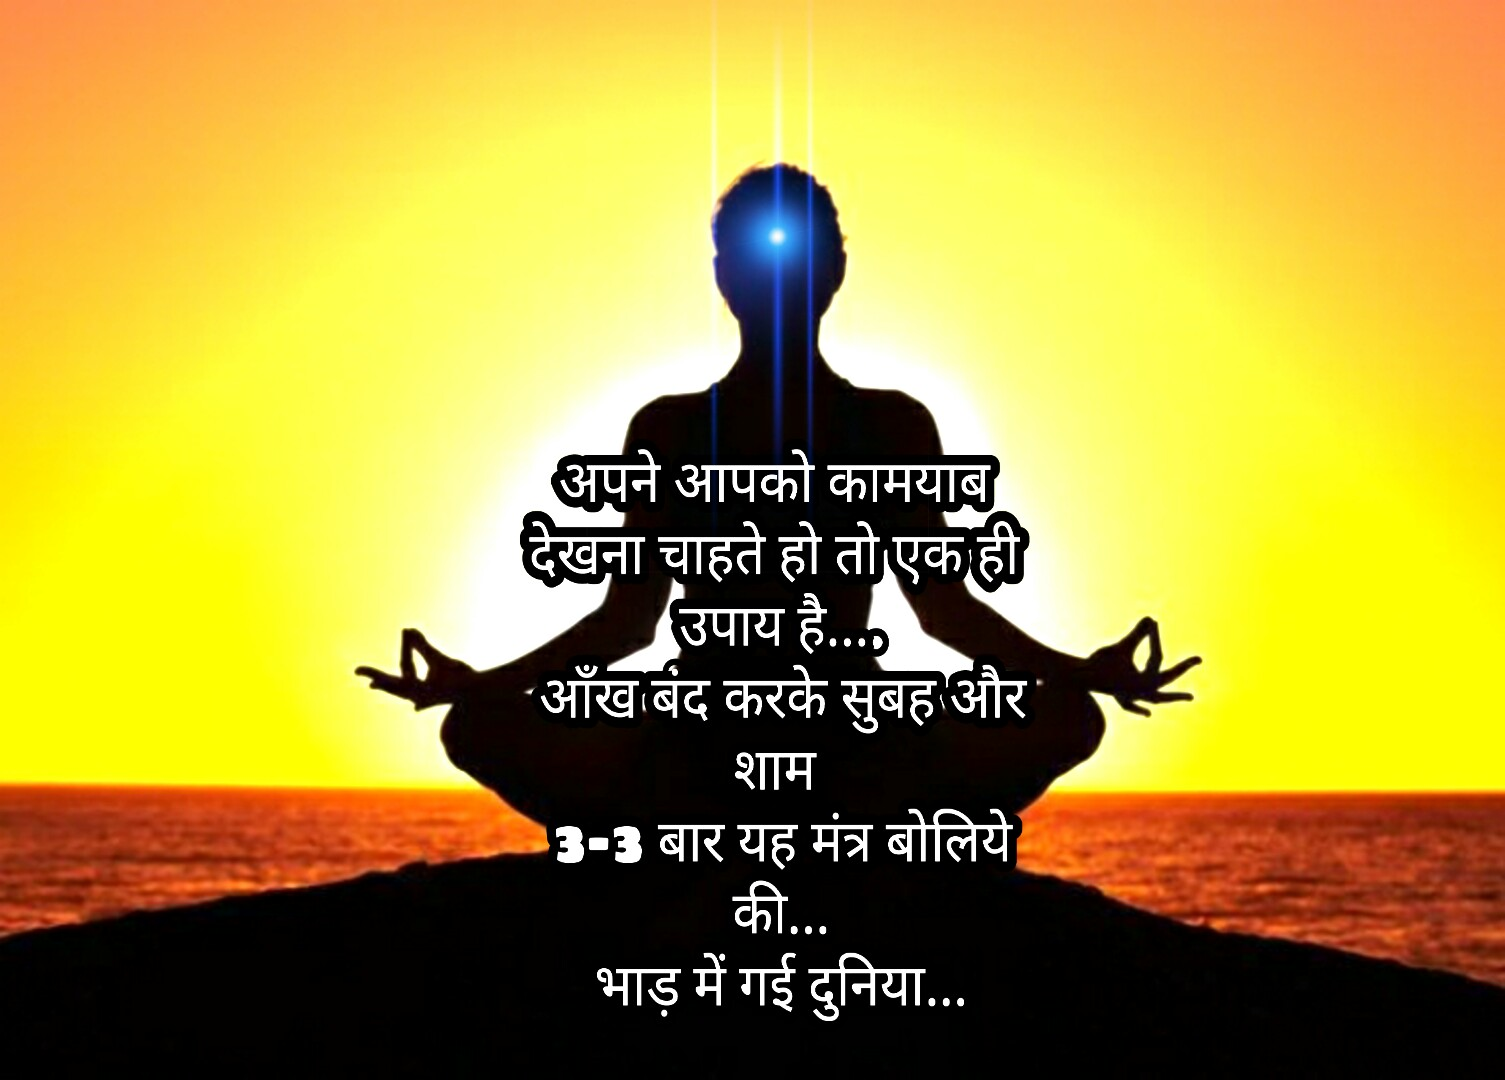 inspirational quotes in hindi about life and student with images - My  personal experience